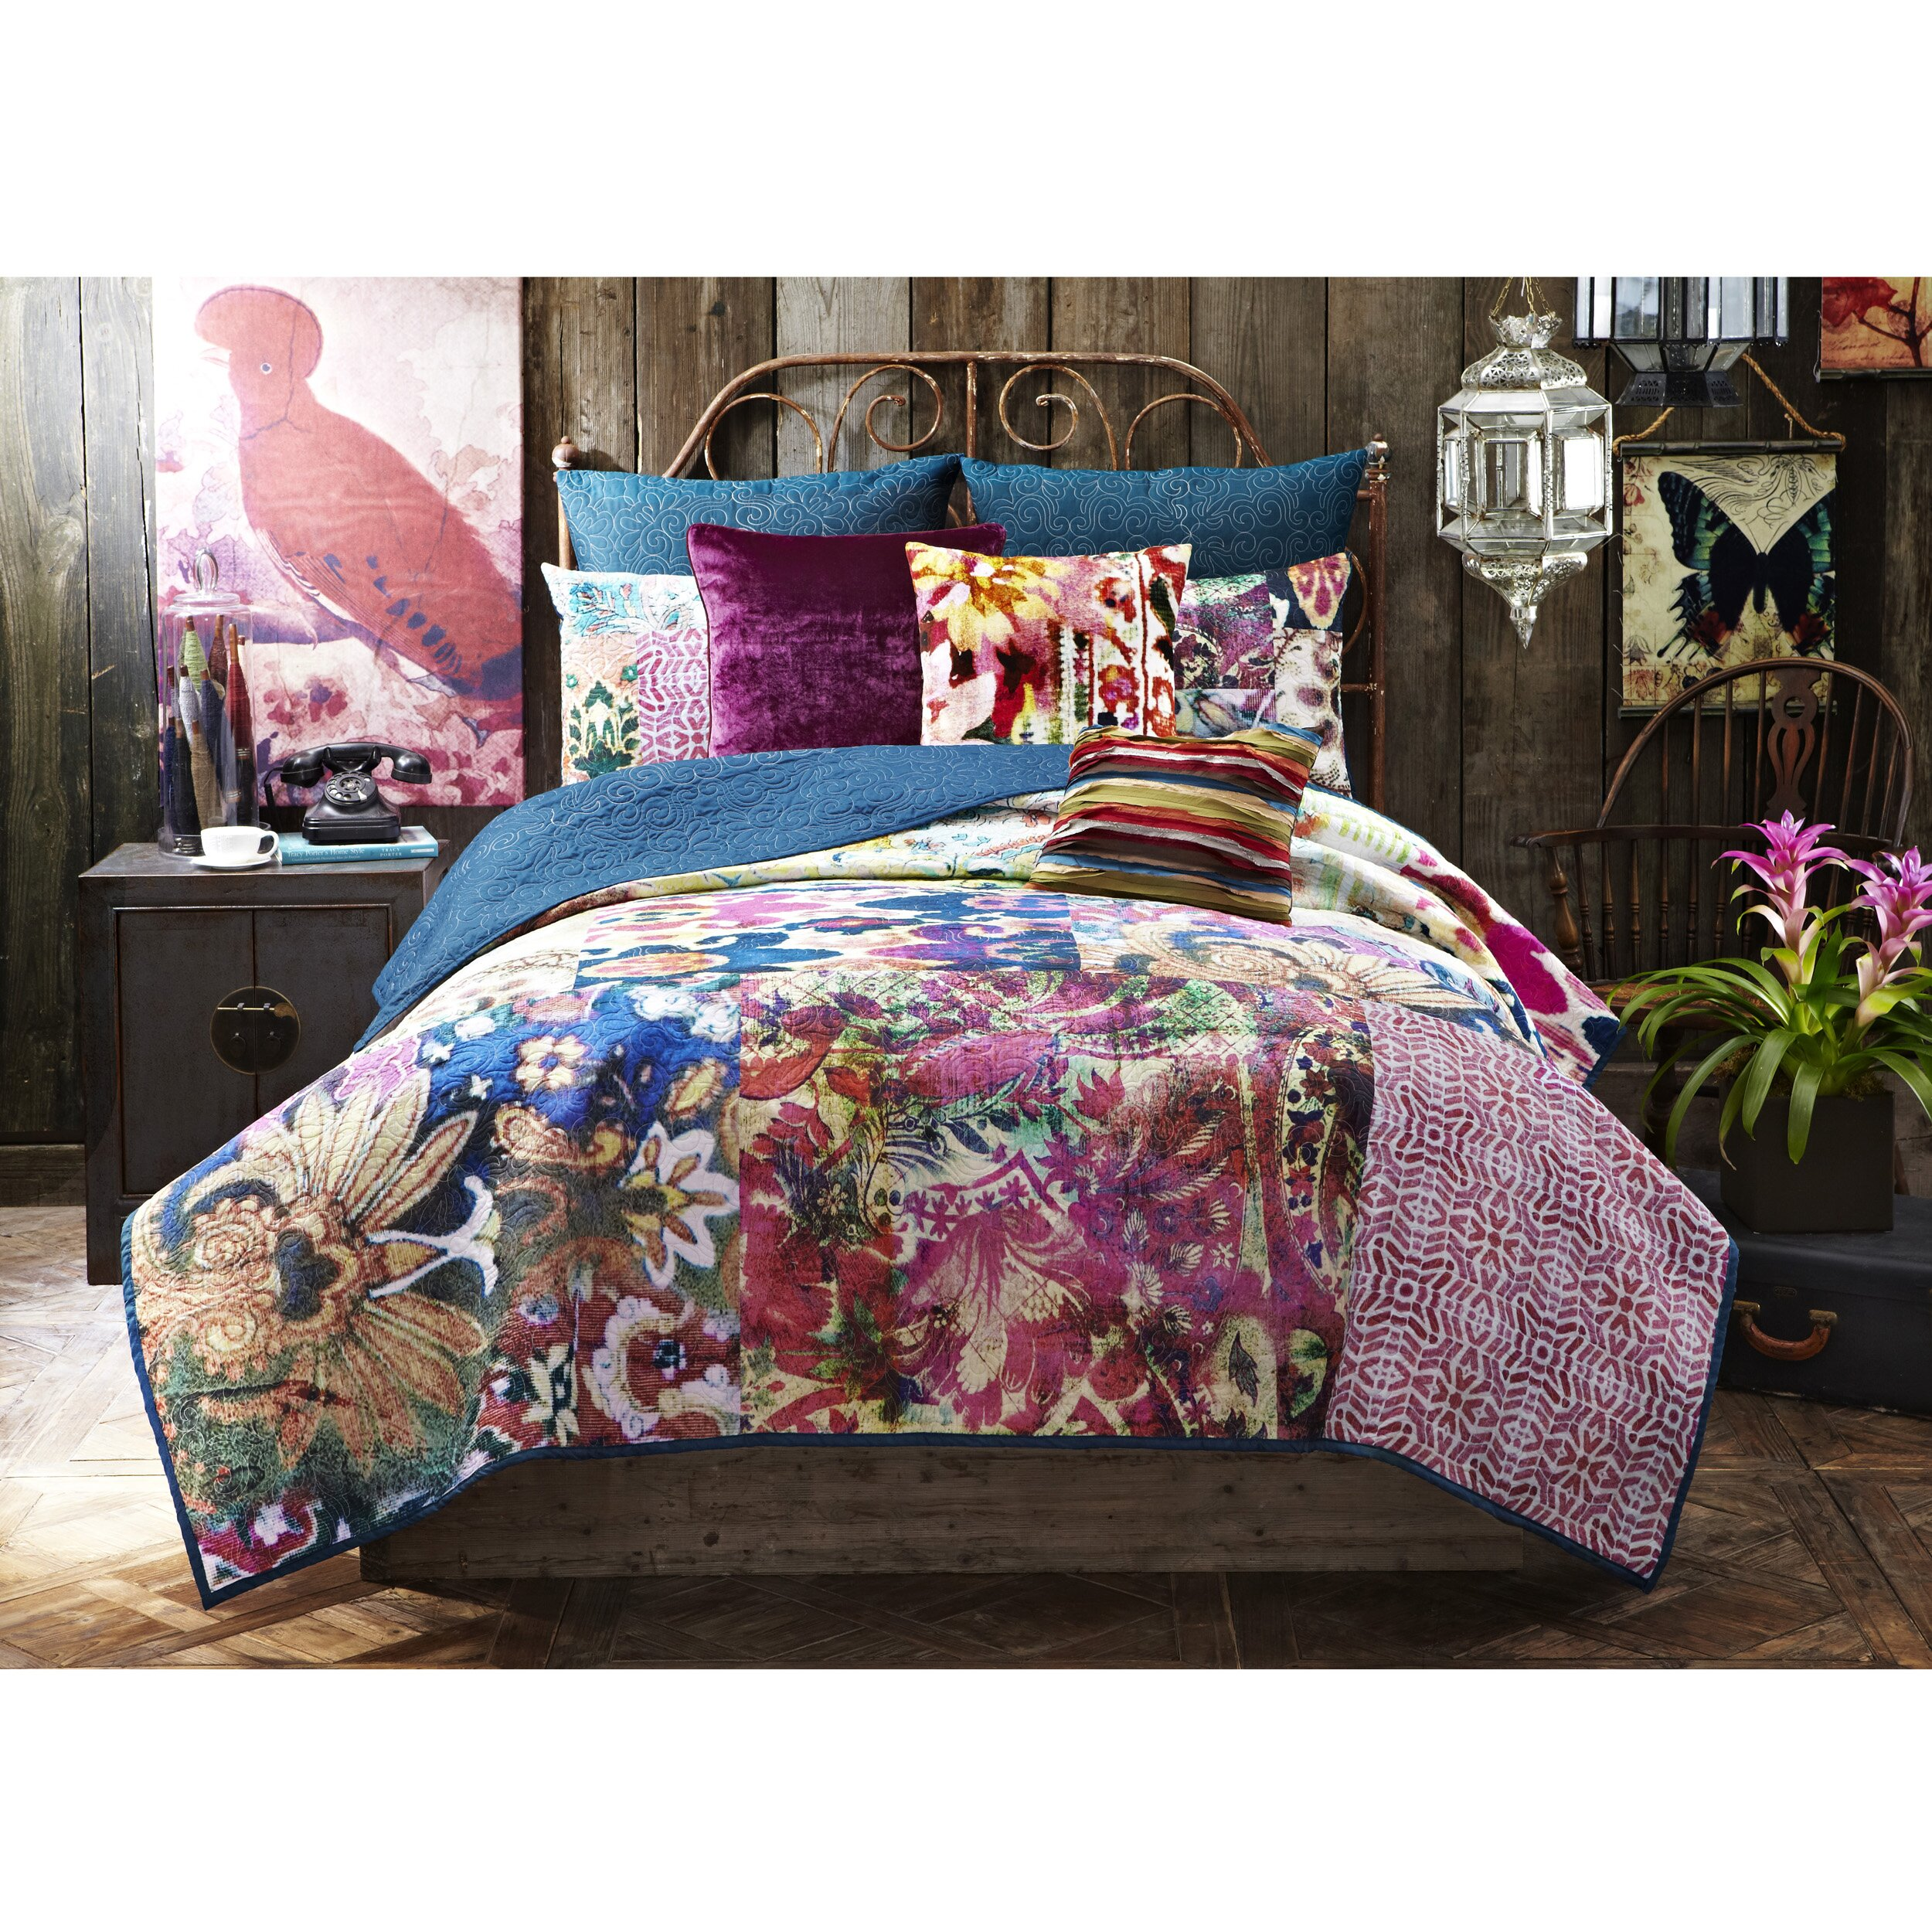 Tracy Porter Leandre Quilt Amp Reviews Wayfair